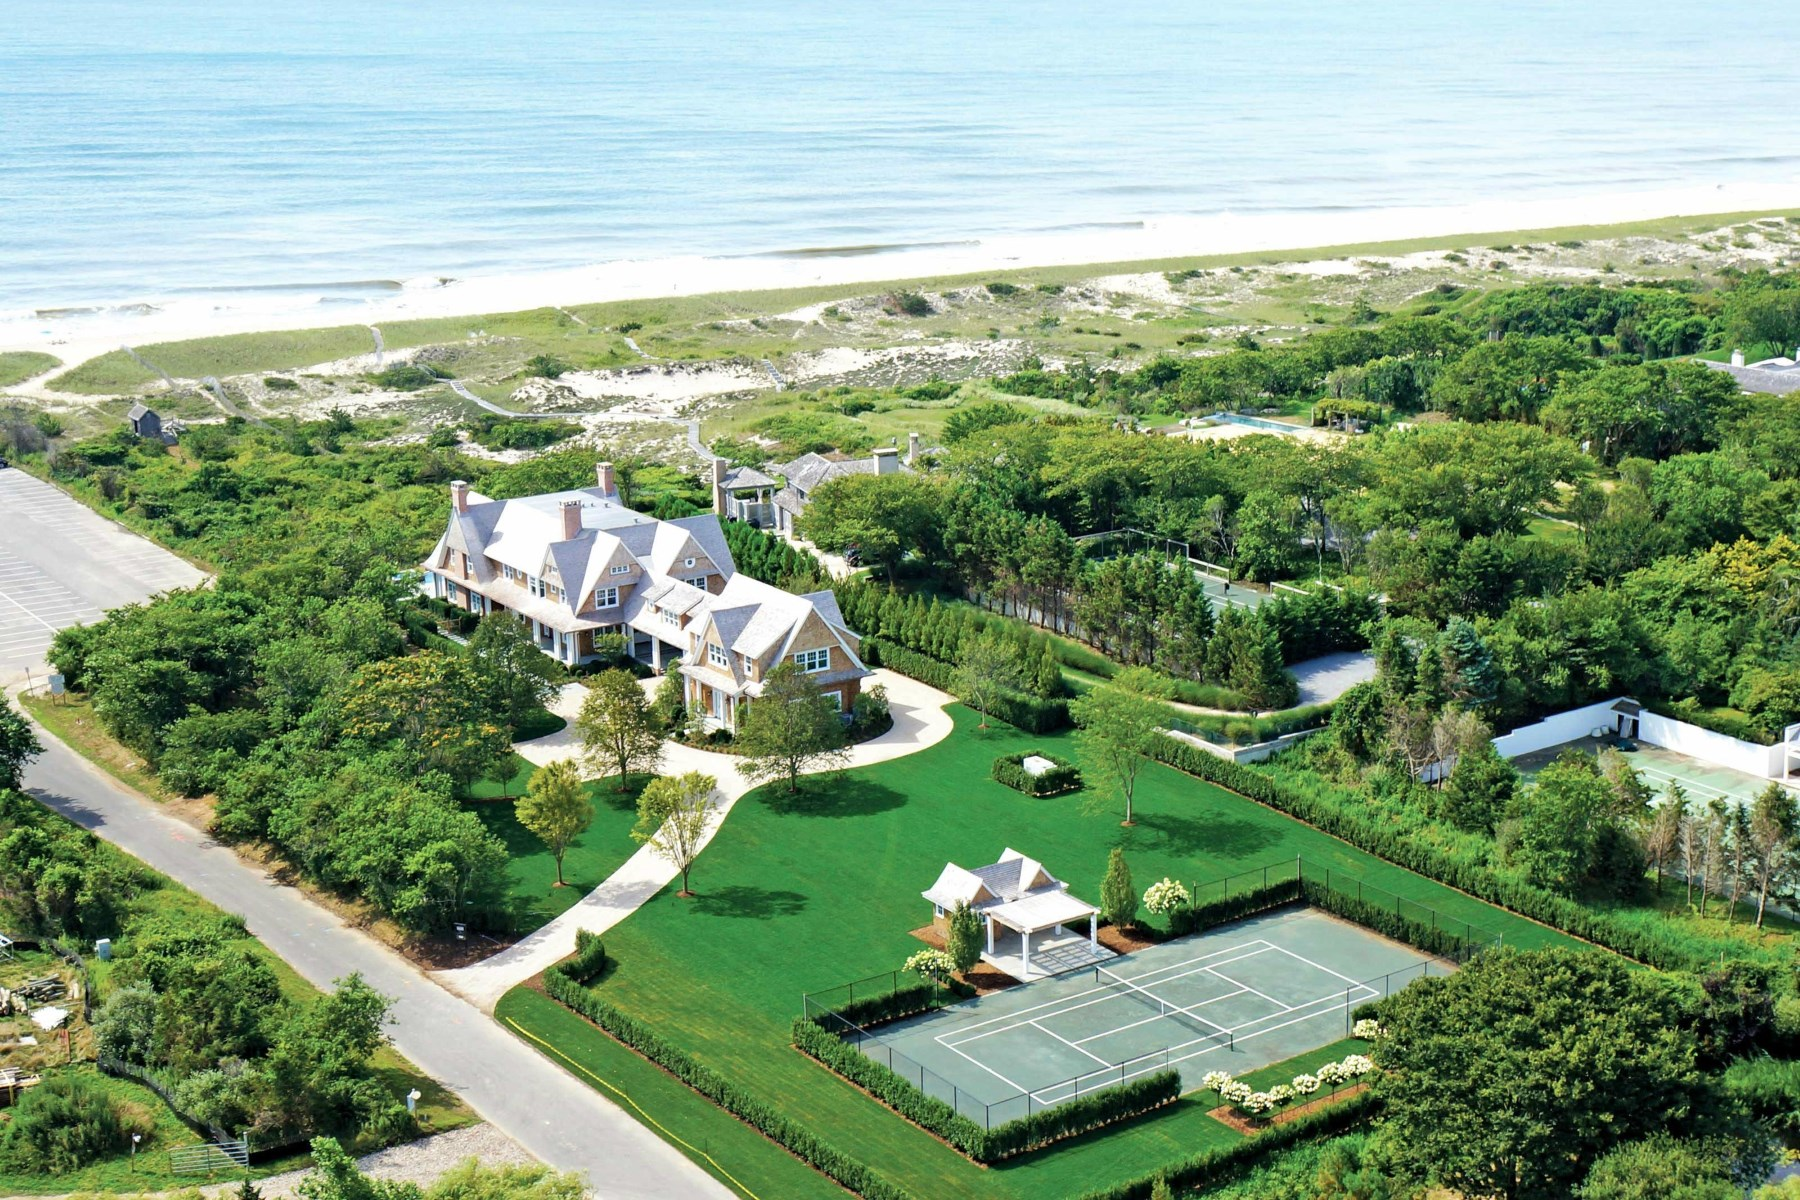 Single Family Home for Sale at East Hampton Oceanfront, Pool and Tennis 38 Two Mile Hollow Road East Hampton Village, East Hampton, New York 11937 United States